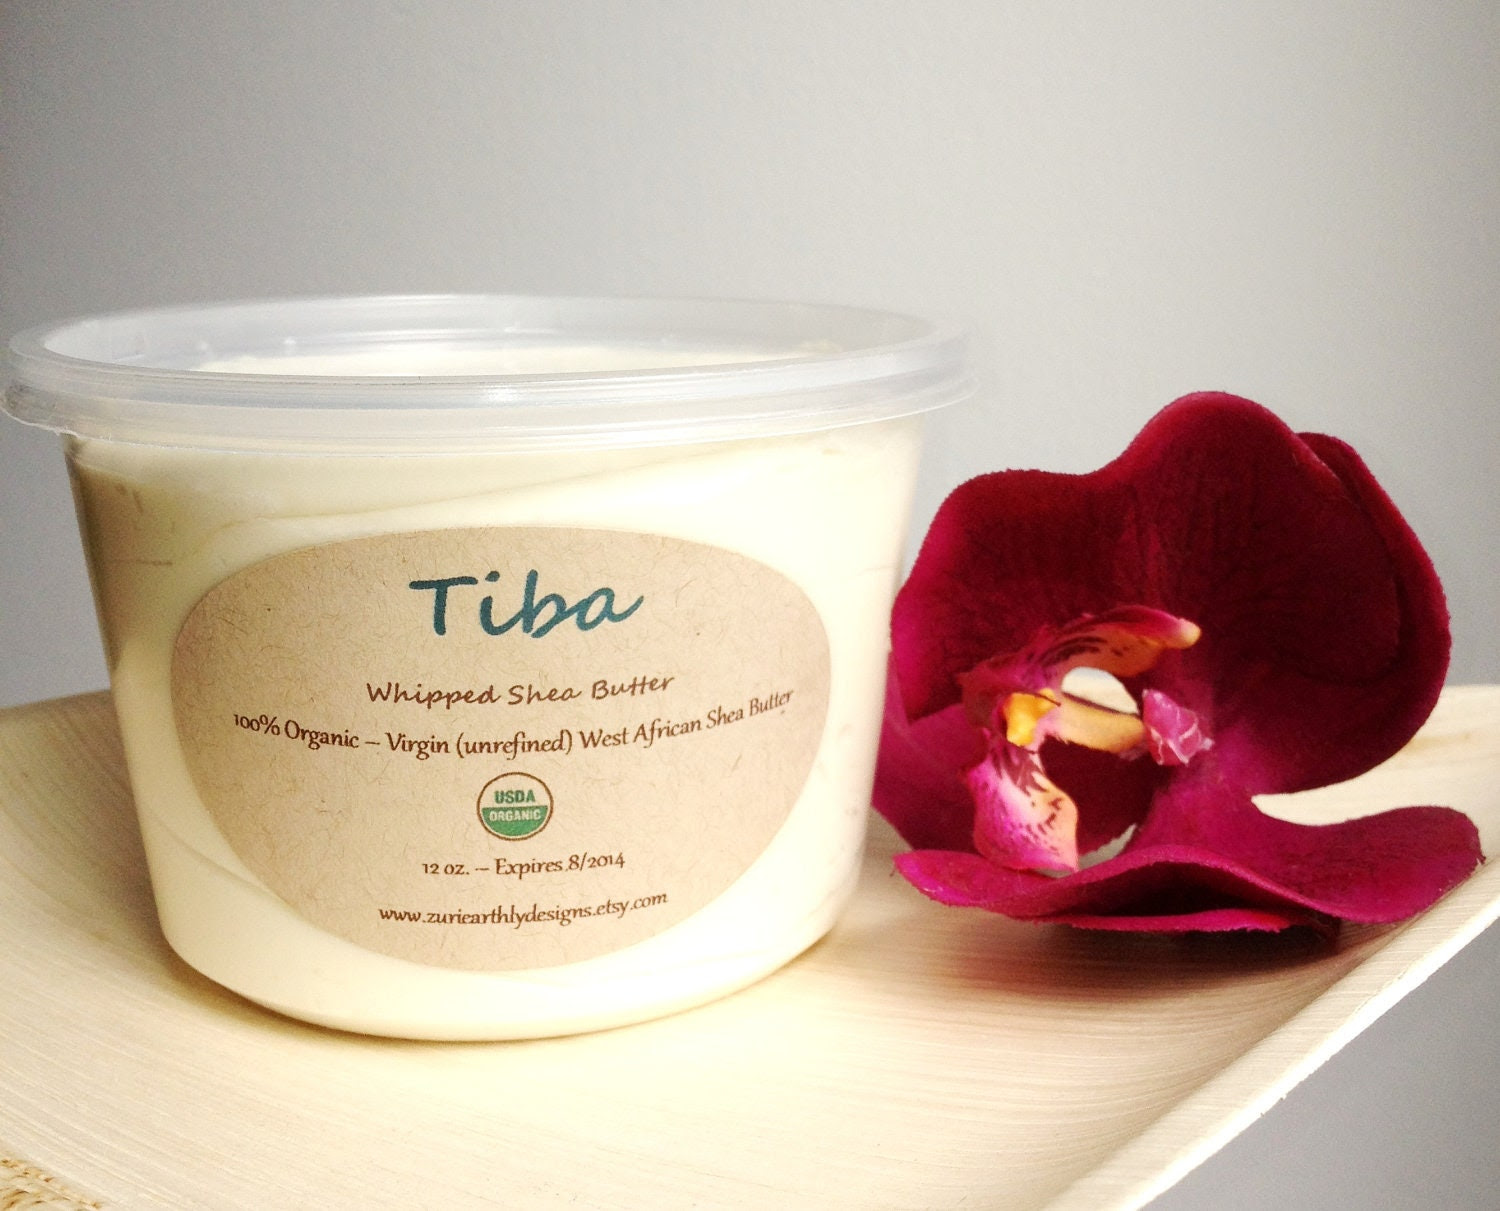 UNSCENTED - 100% Organic Unrefined Whipped Shea Butter - 12 oz.